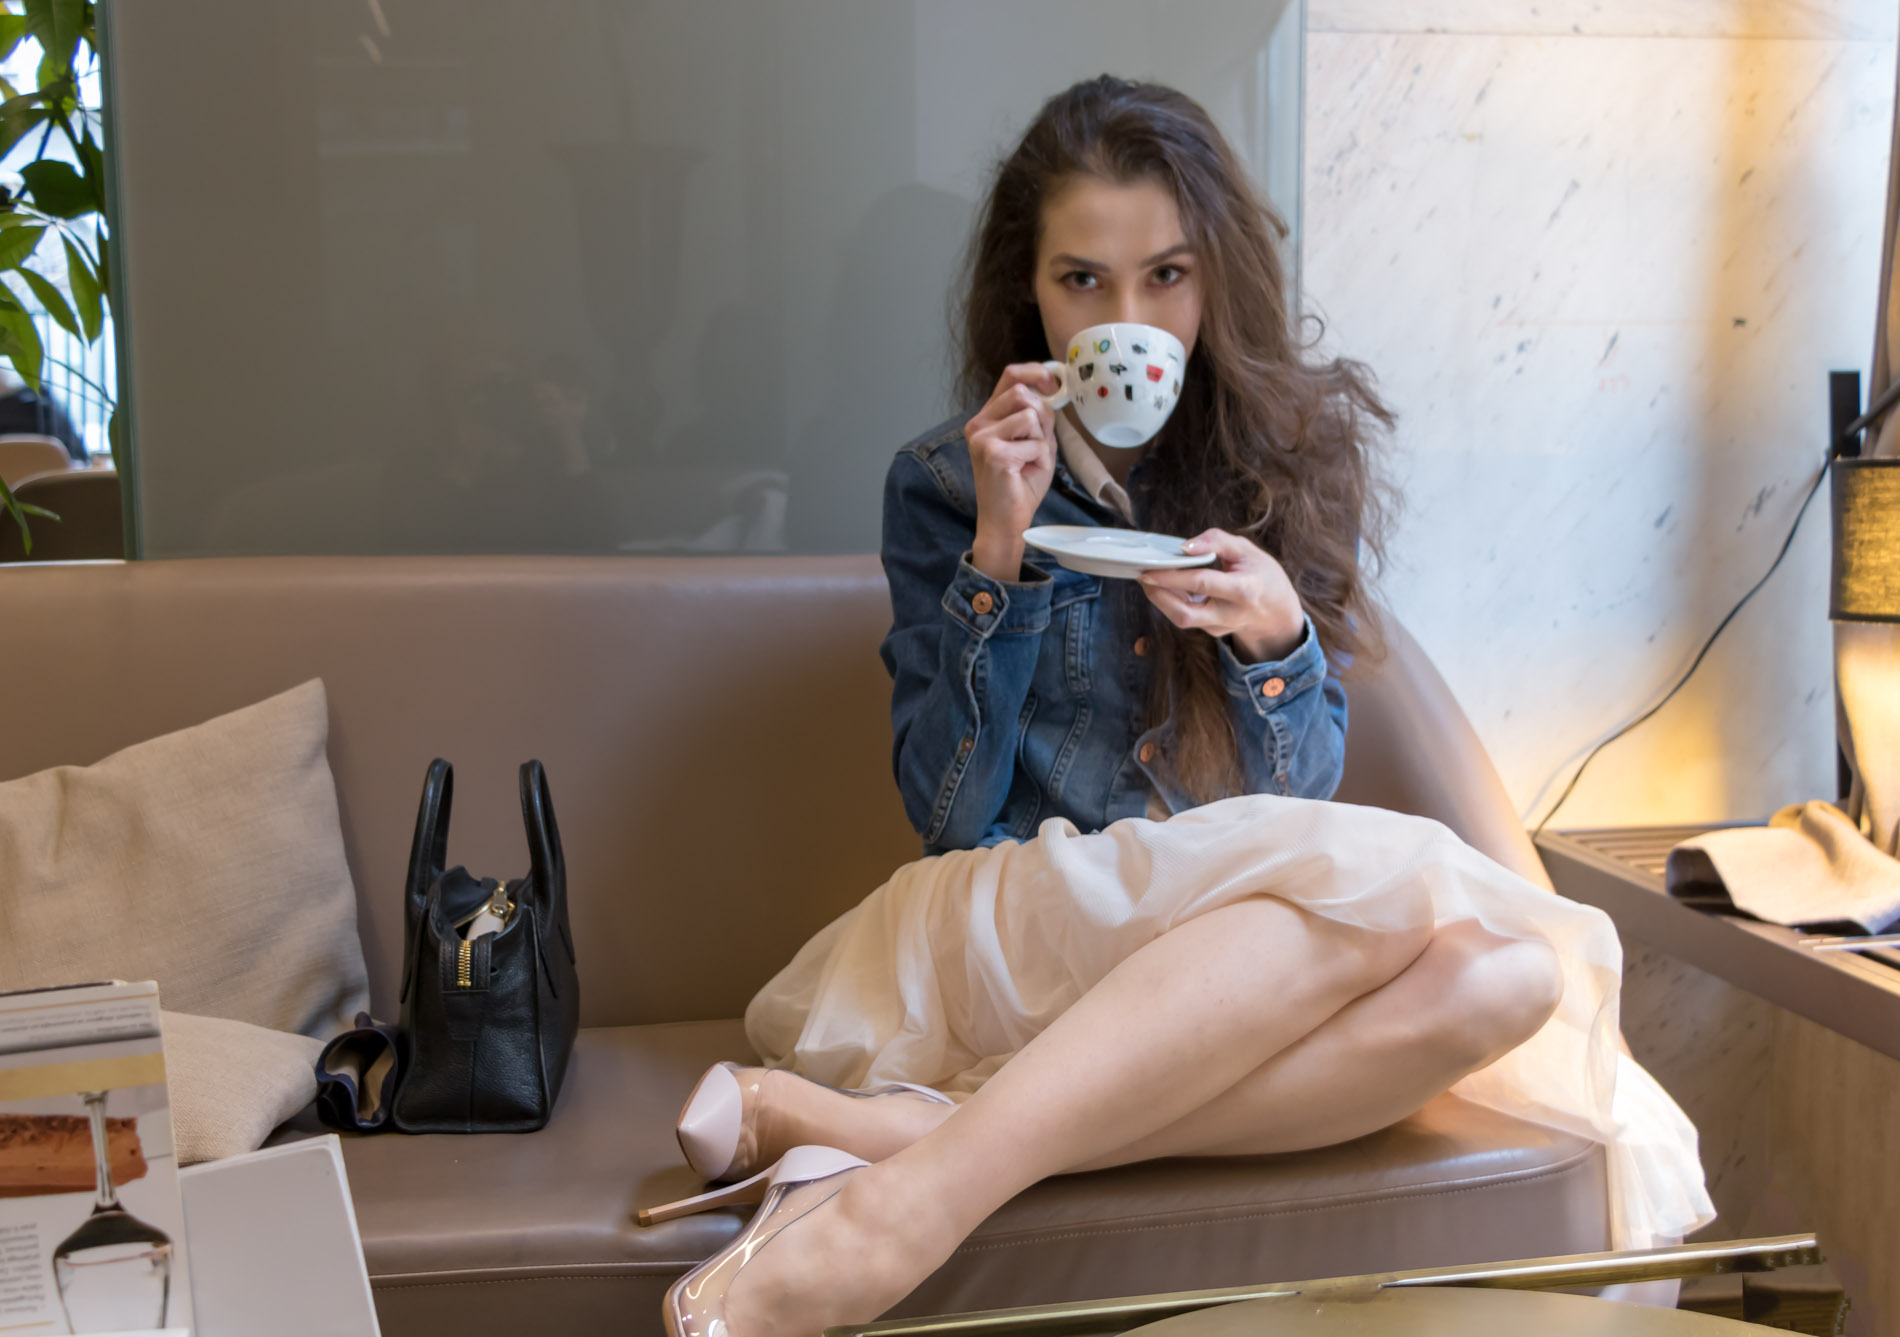 Fashion Blogger Veronika Lipar of Brunette from Wall Street dressed in blush Gianvito Rossi Plexi 100 leather and PVC pump shoes, blush tulle skirt from Zara, blue denim jacket from H&M while drinking coffee